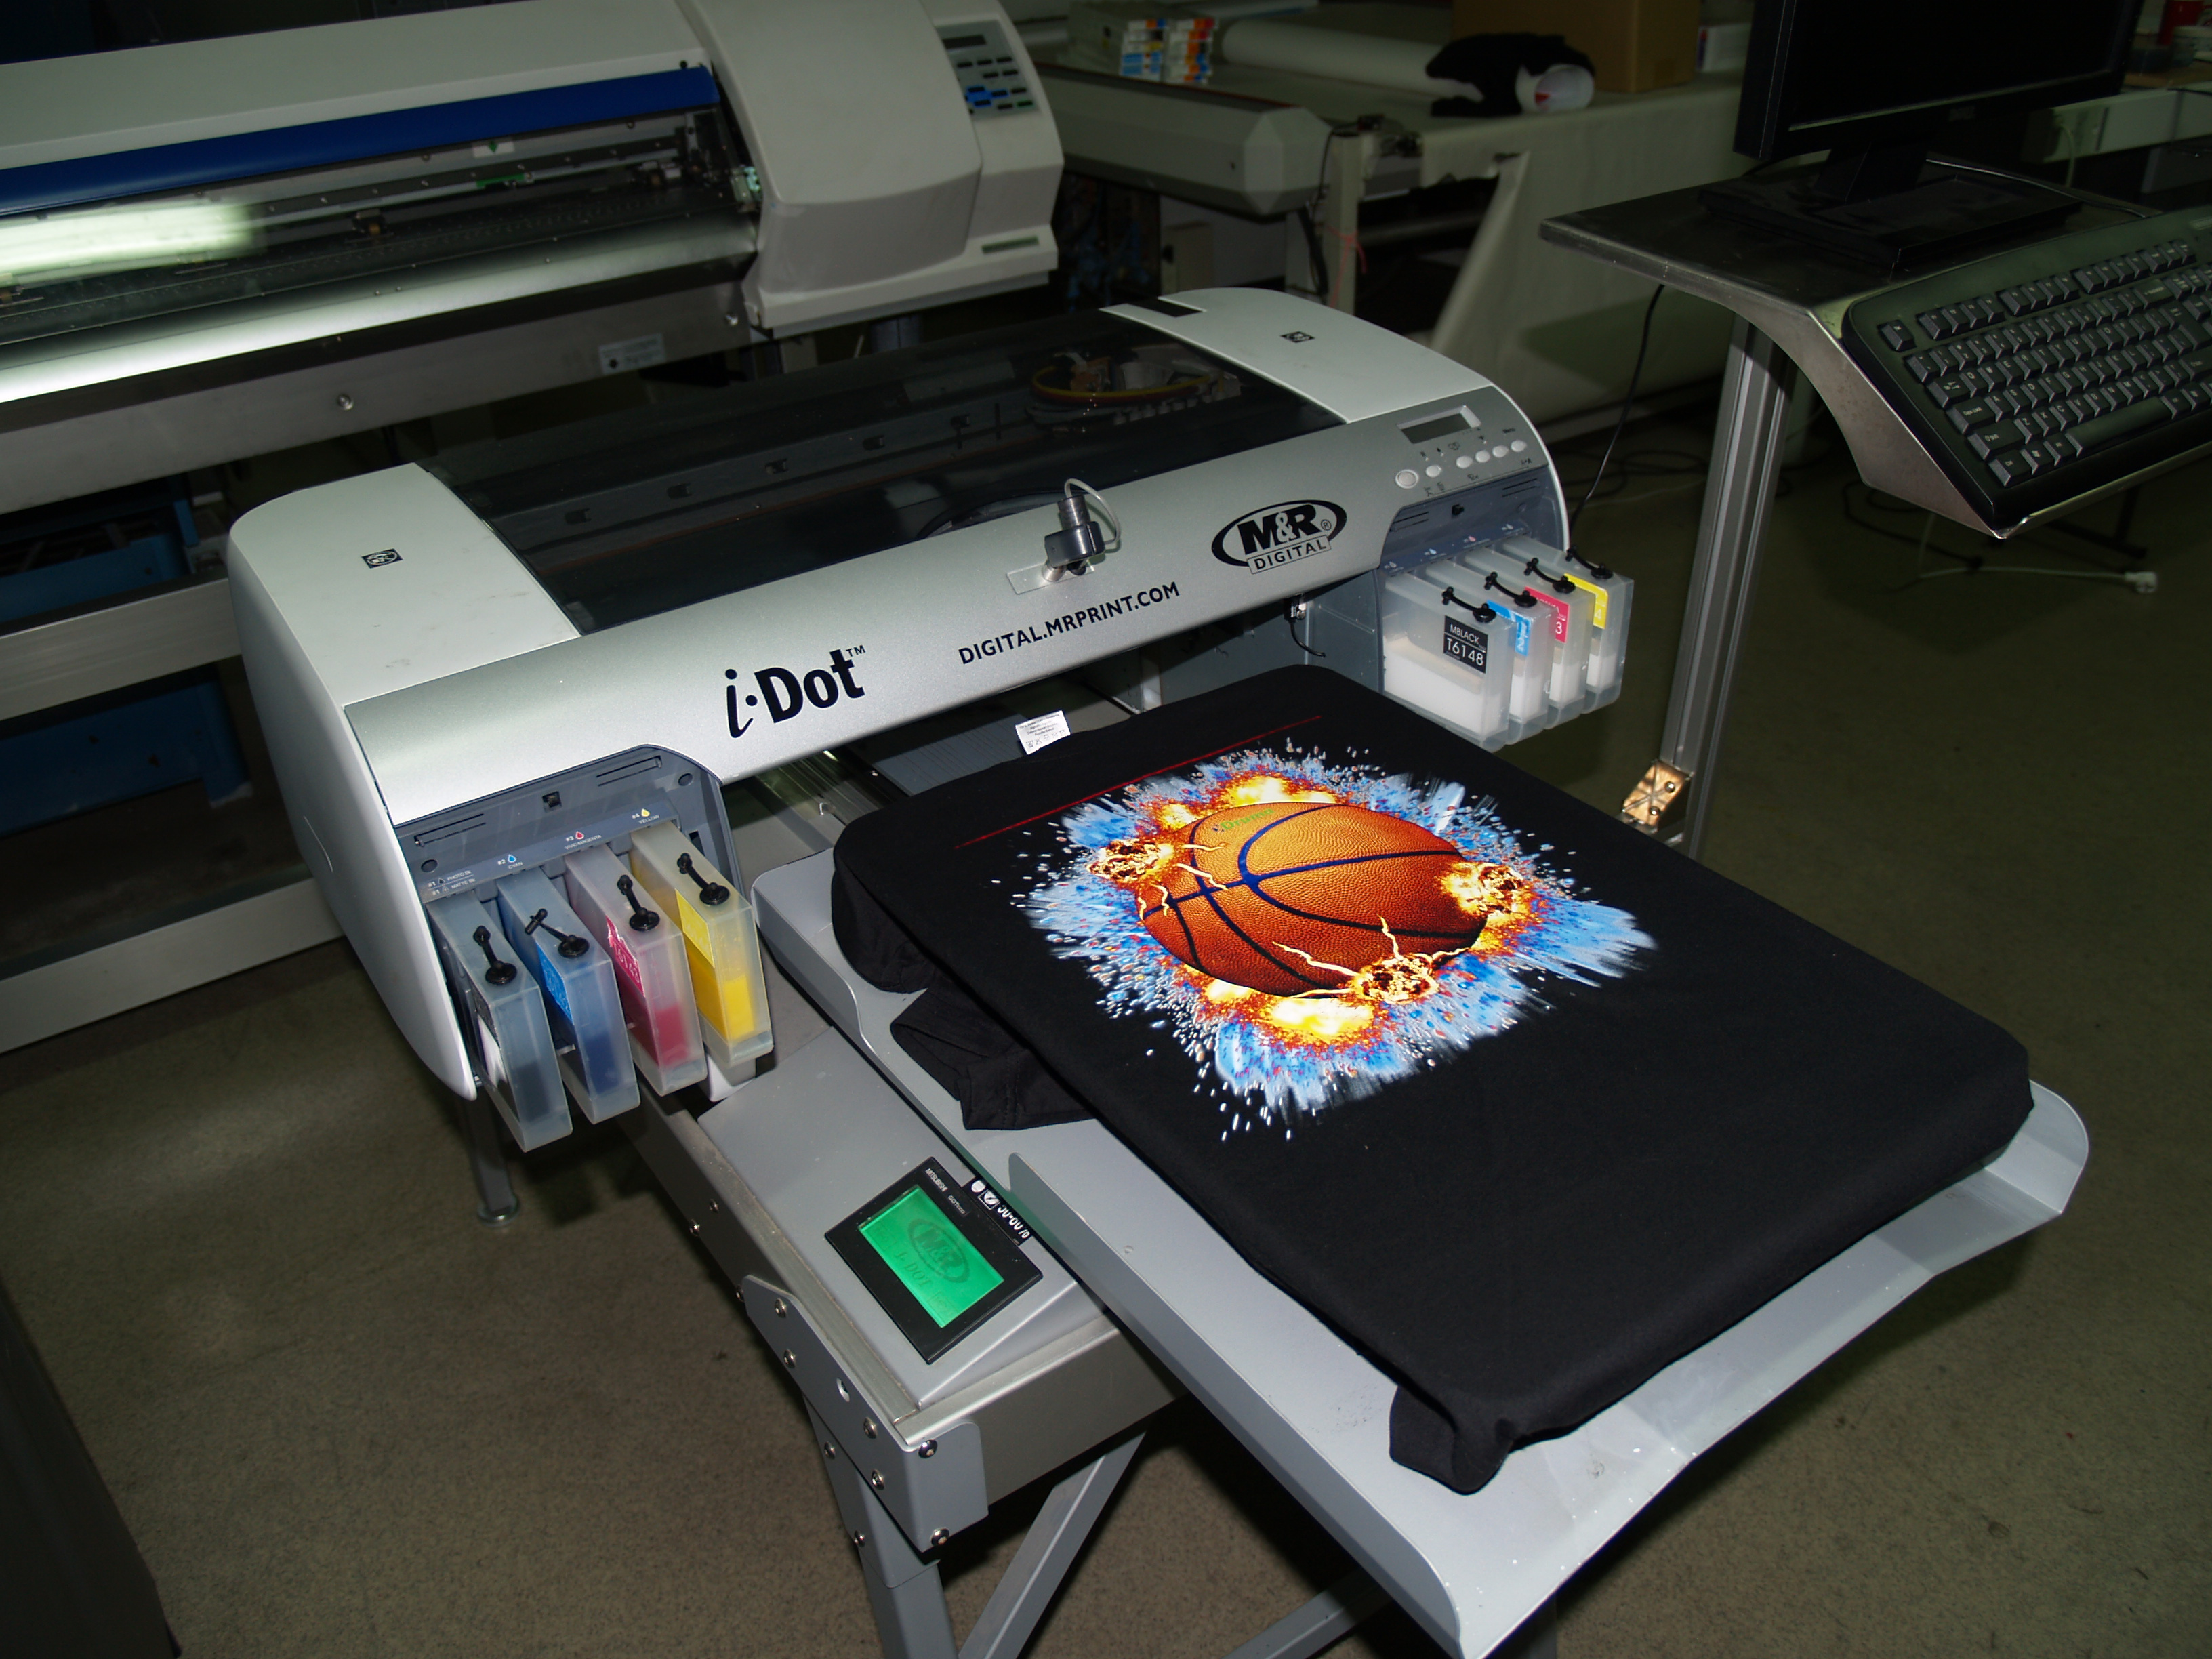 Used printer for t shirts i dot 2100 exapro for Photo printing on t shirts